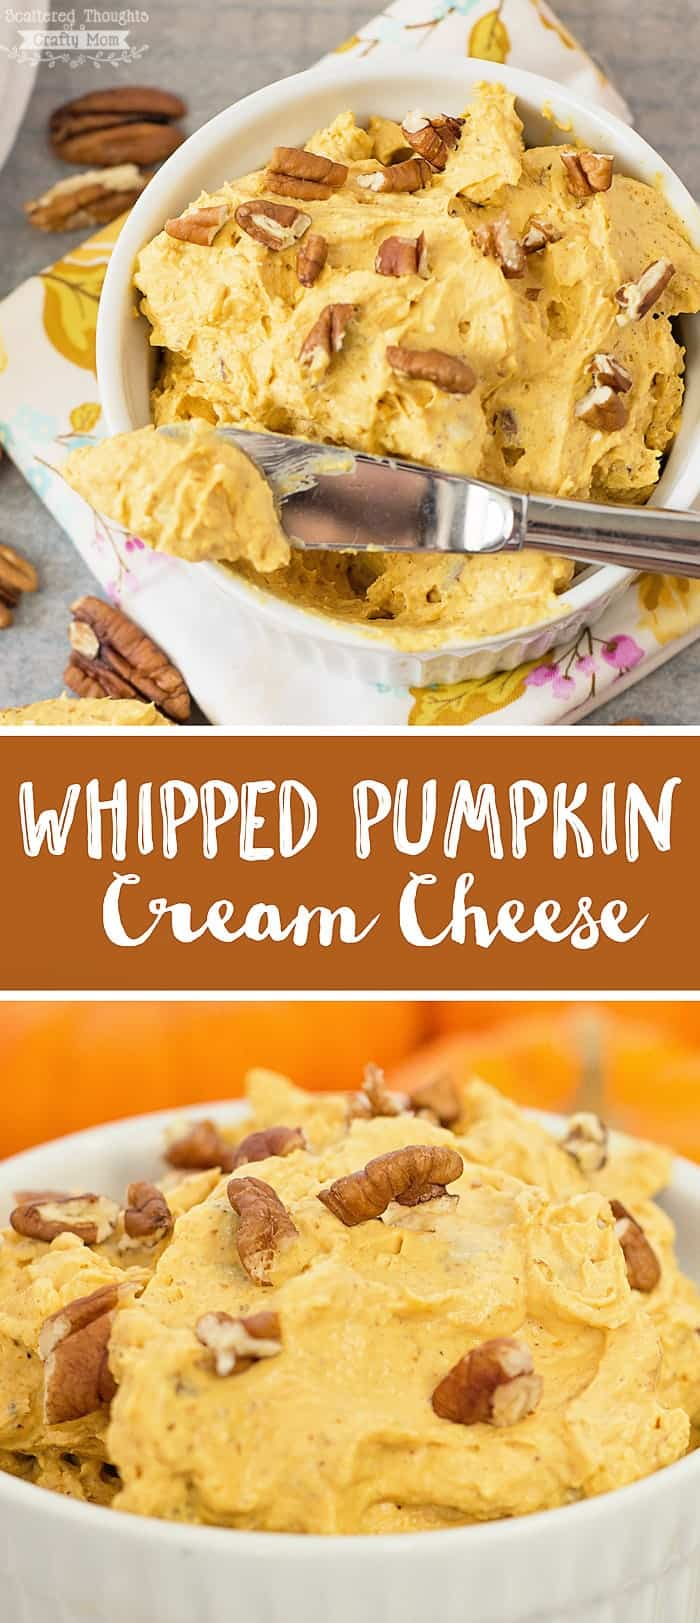 This Whipped Pumpkin Cream Cheese Recipe has all the flavors of fall and is the perfect topping for bagels, waffles and so much more!